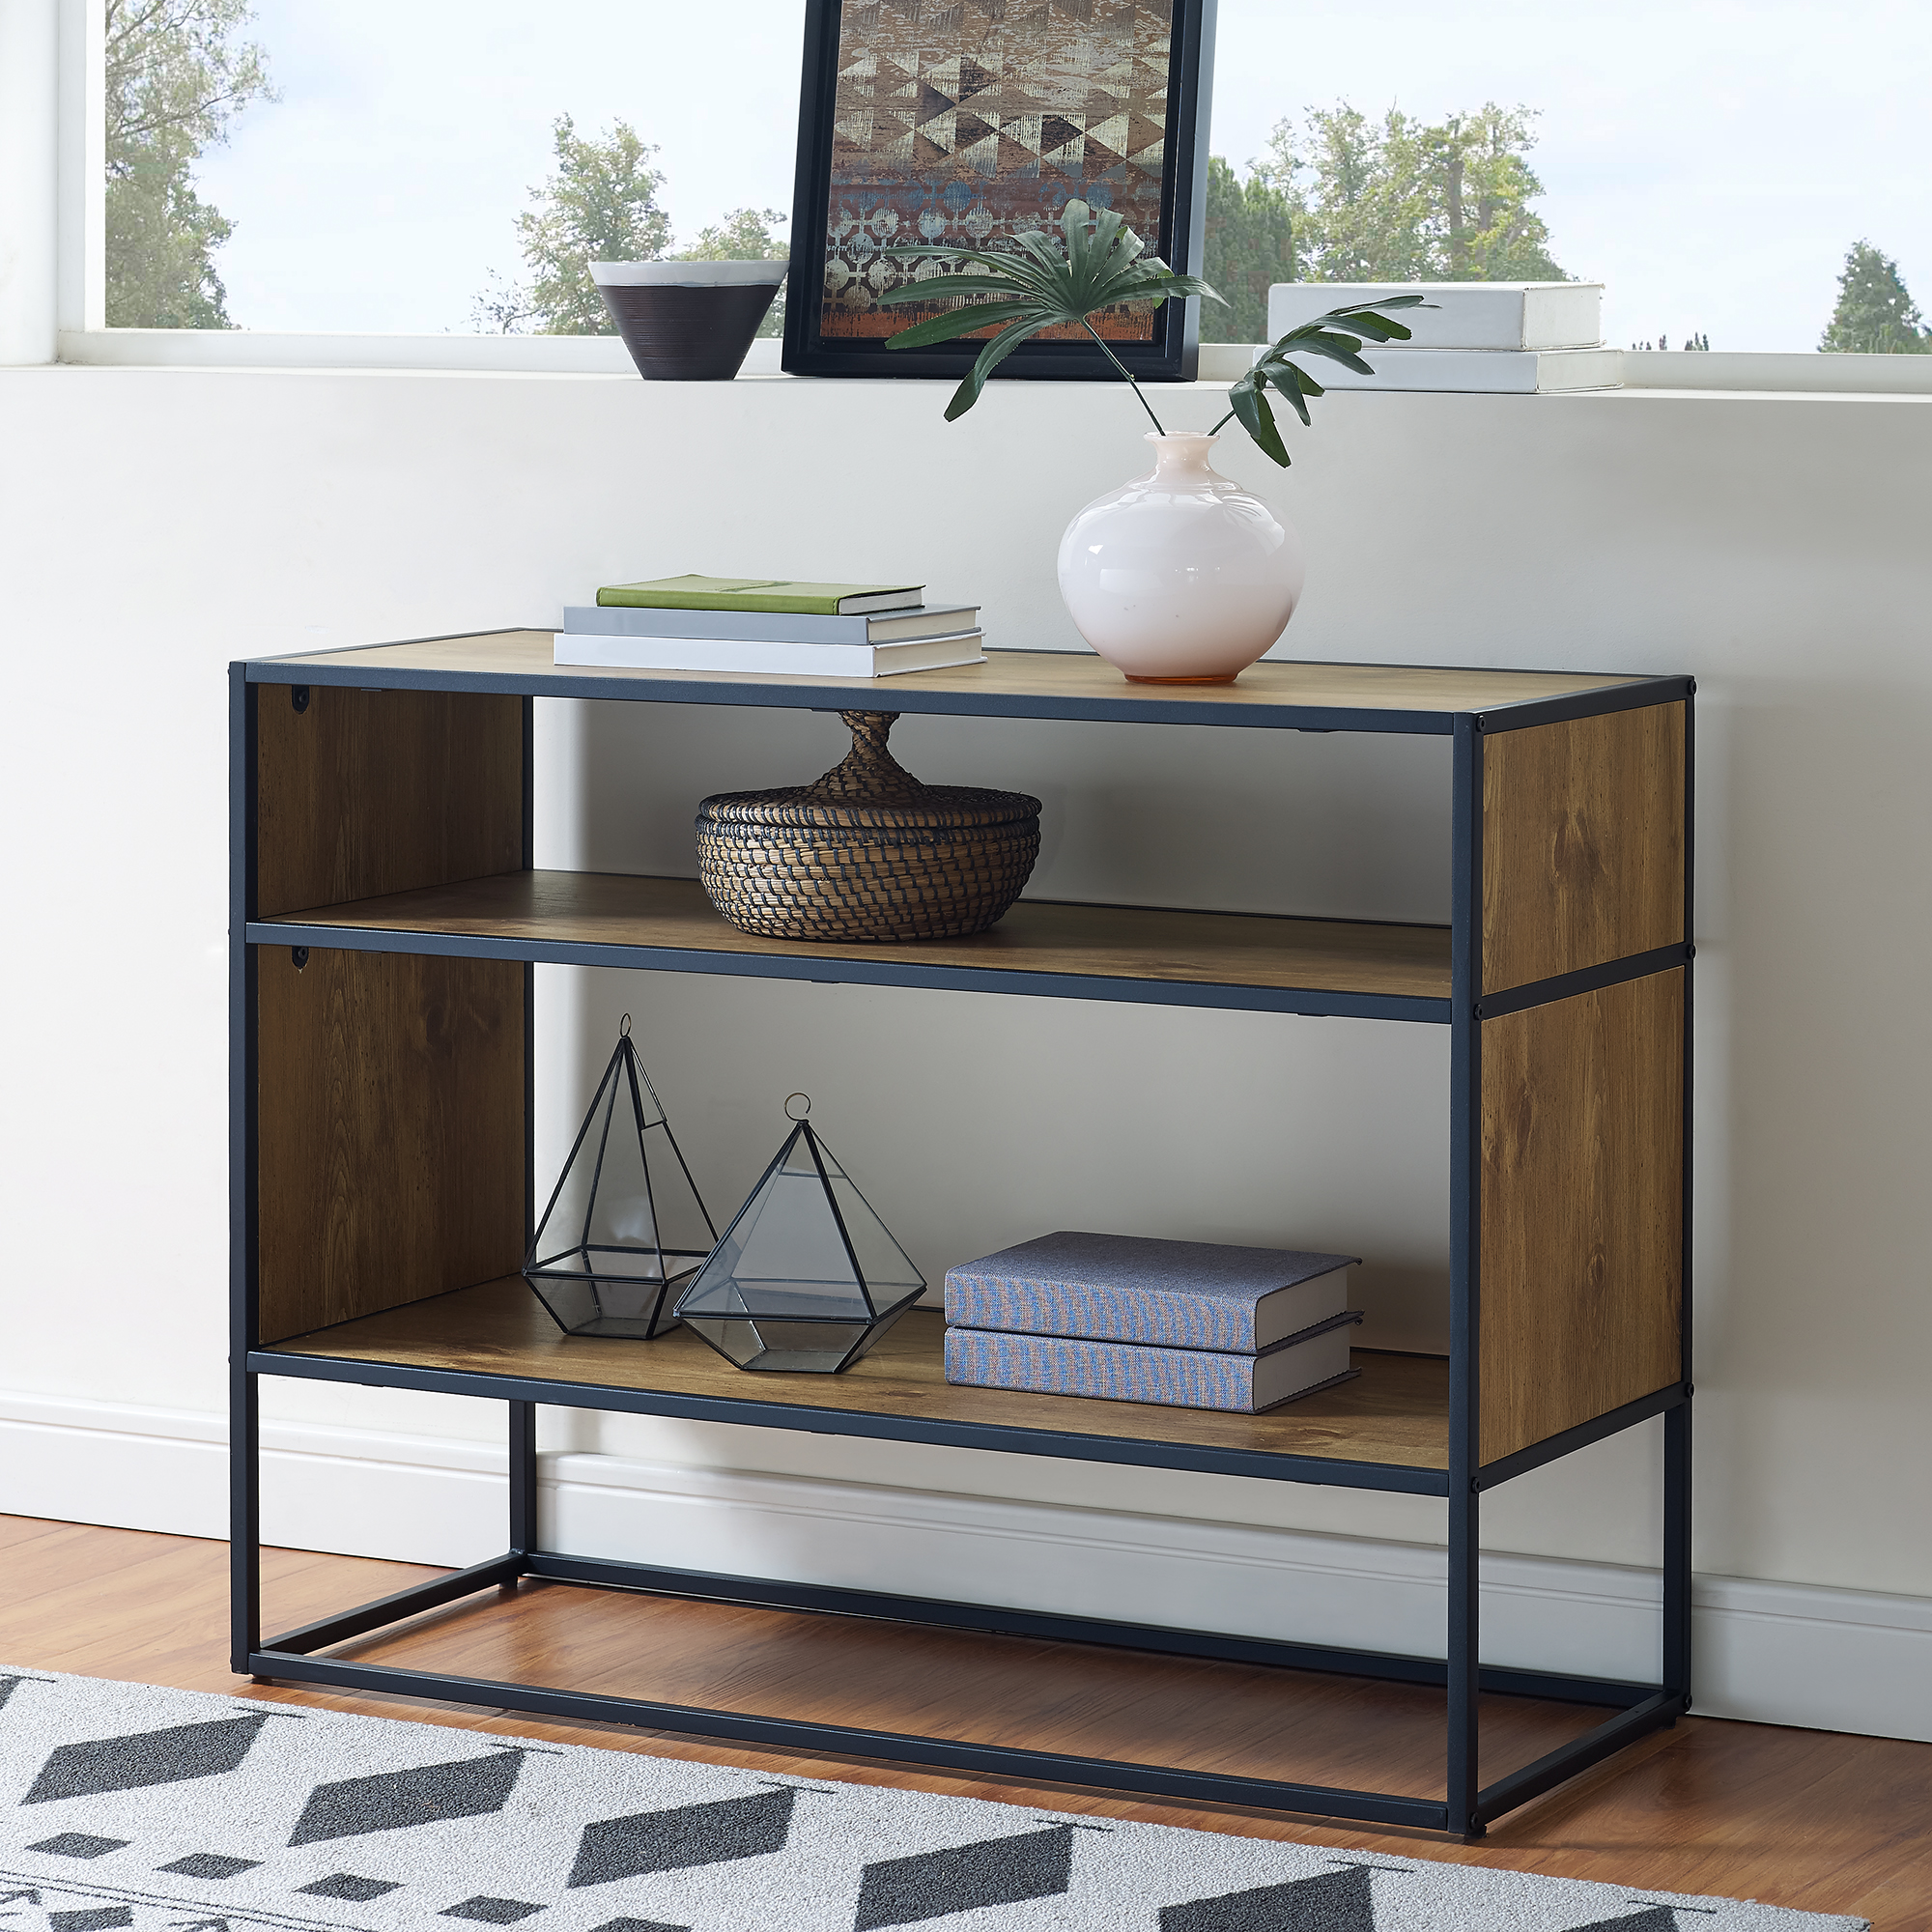 "Mainstays Atmore 40"" Media Storage Console Bookcase"